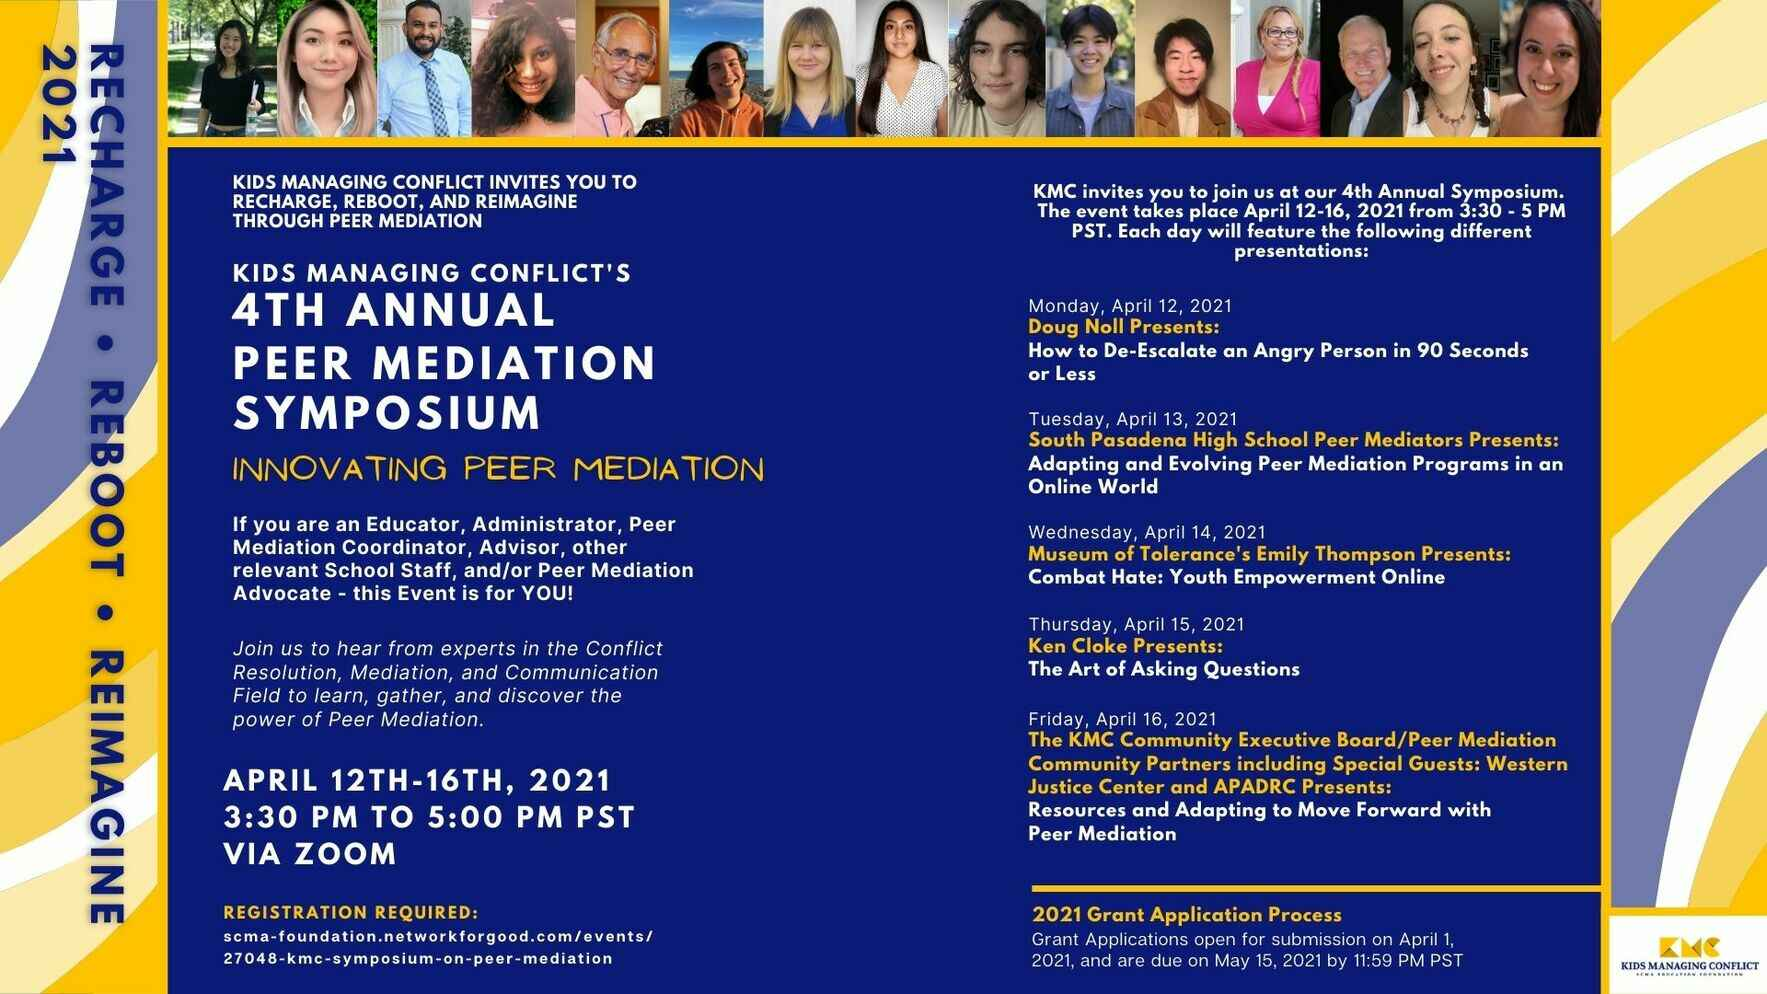 KMC Fourth Annual Symposium: RECHARGE, REBOOT, AND REIMAGINE: Innovating Peer Mediation image